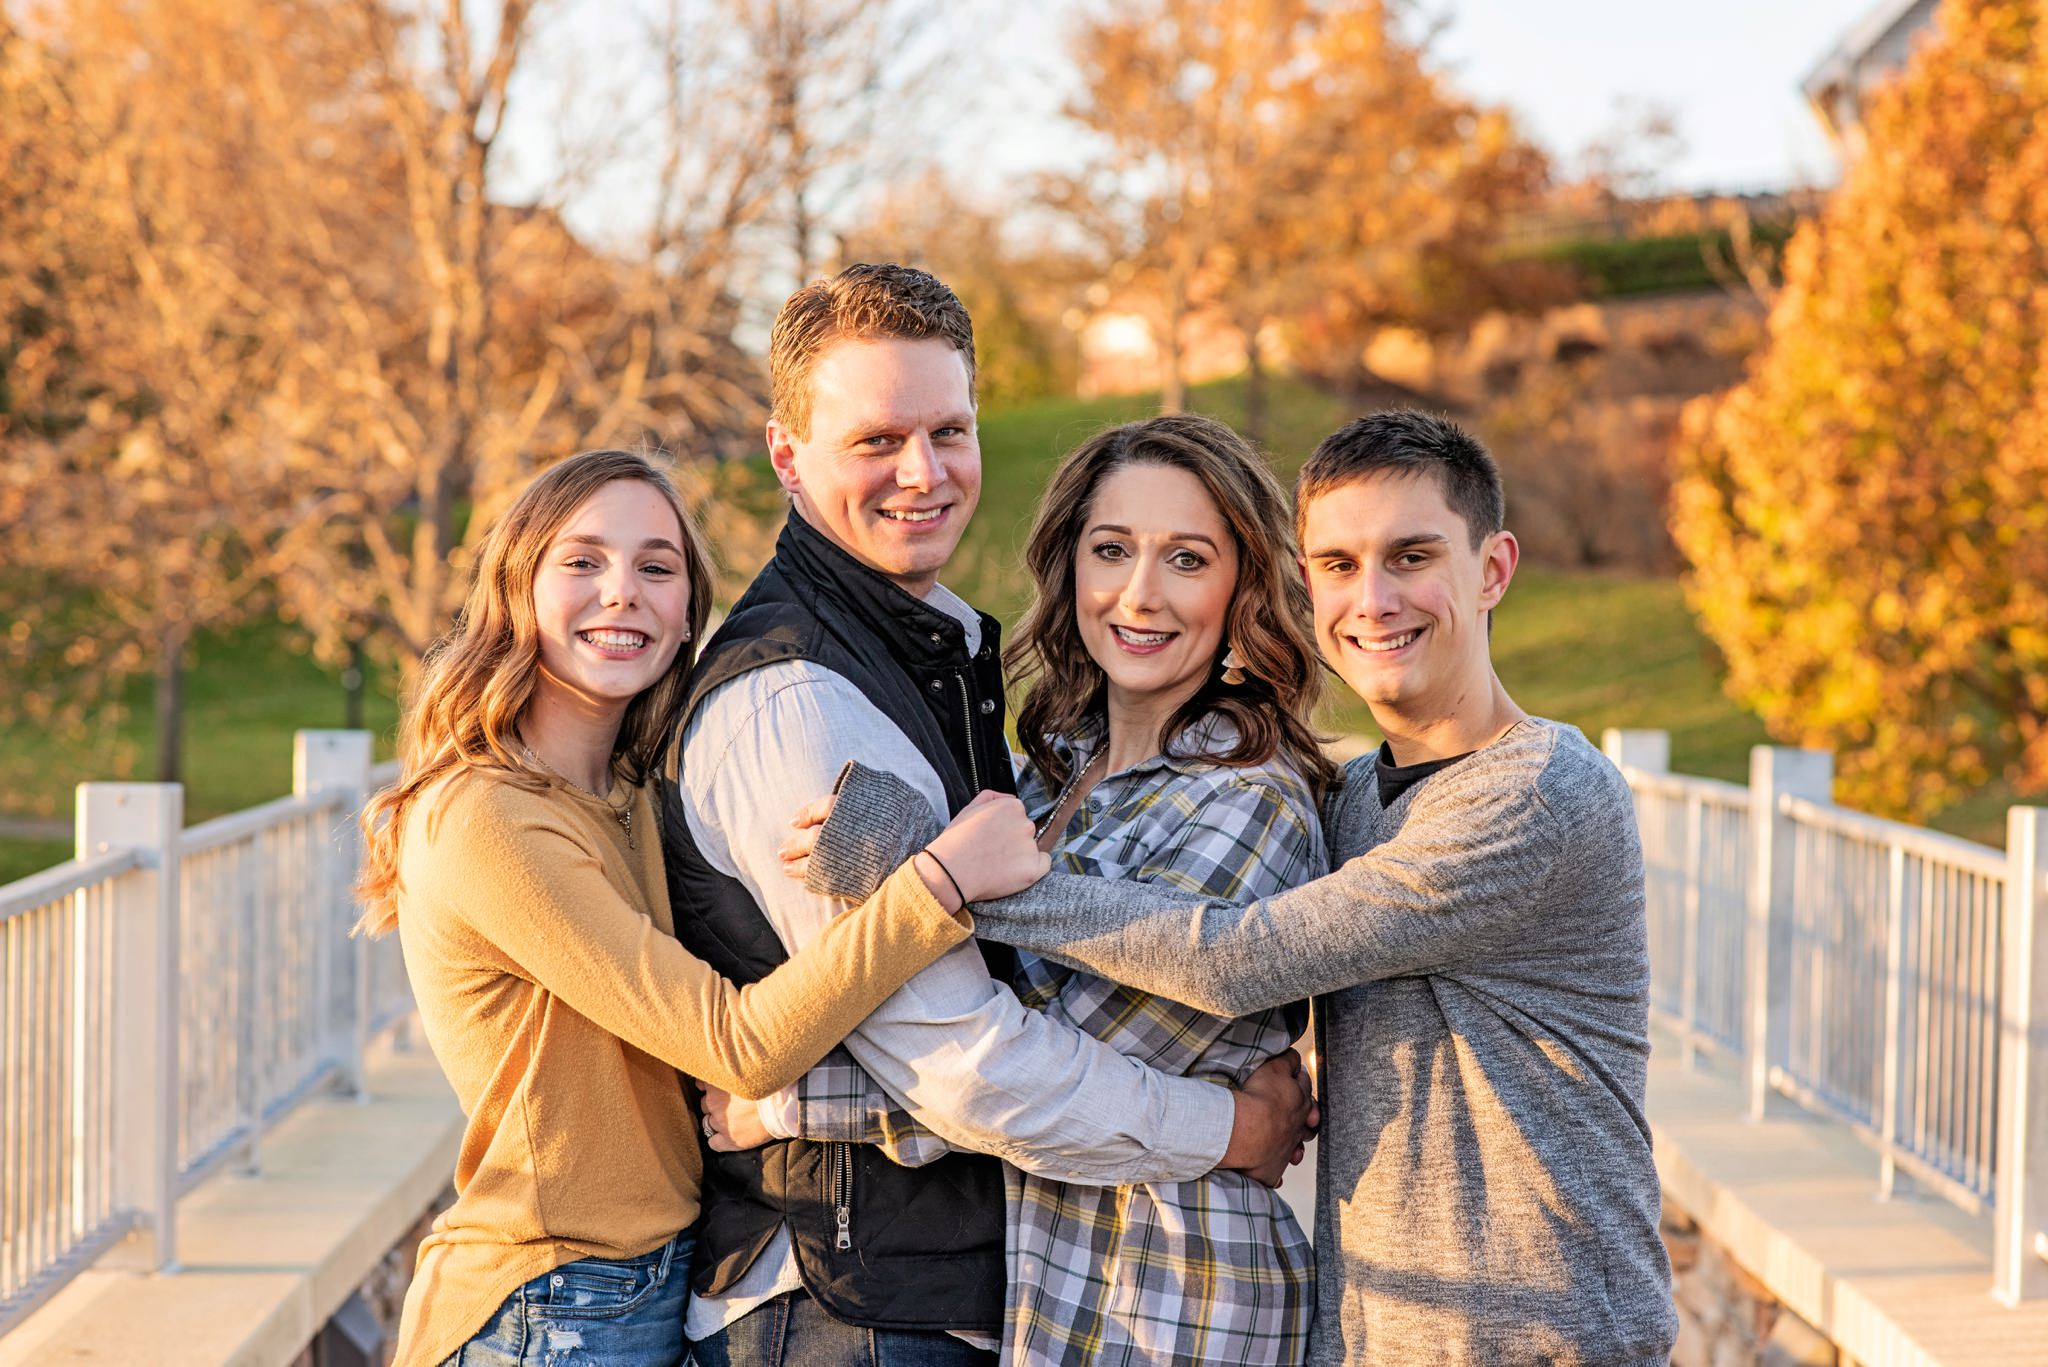 Wittwer-Family-Rotella-Photography-2018-46_WEB.jpg